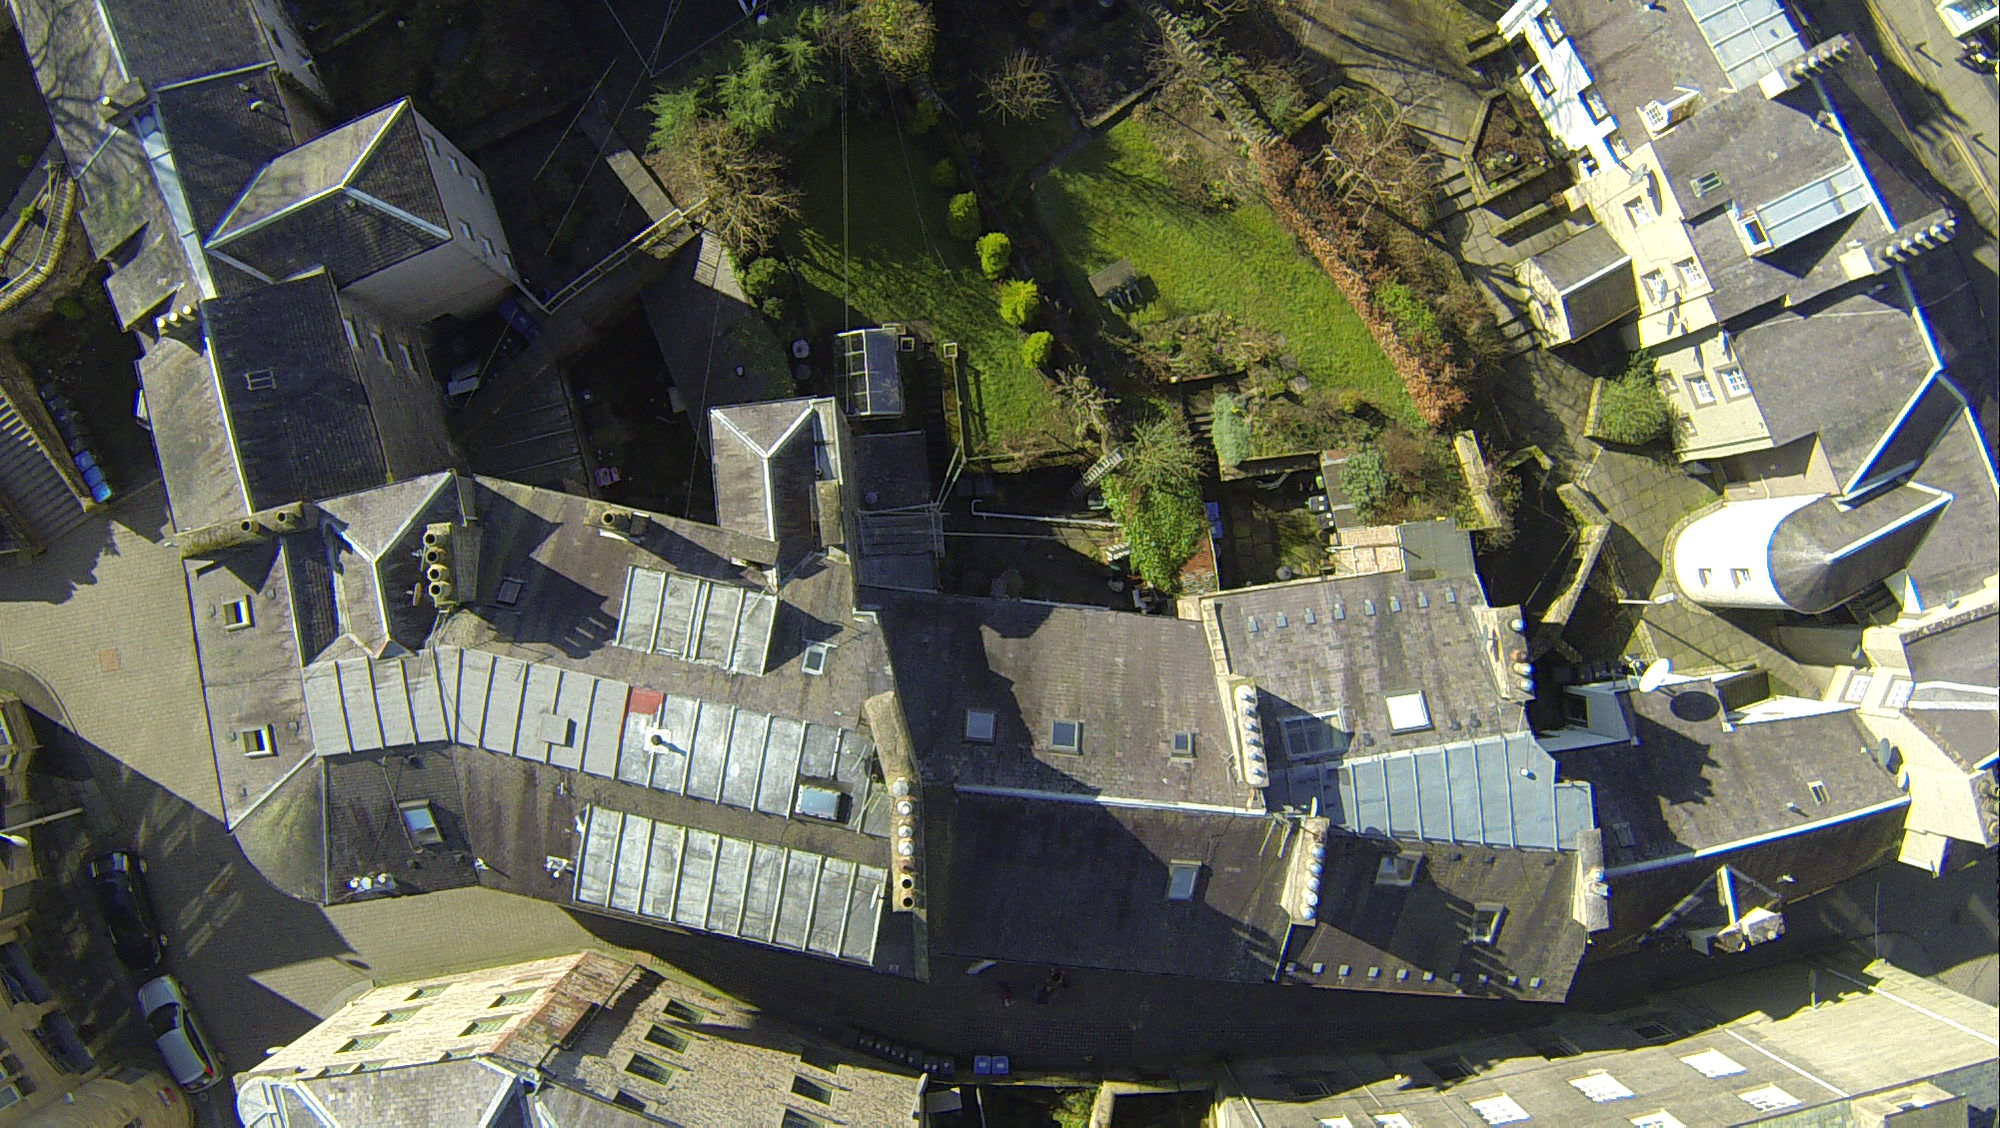 Rooftops and gardens aerial view - Survey Drones